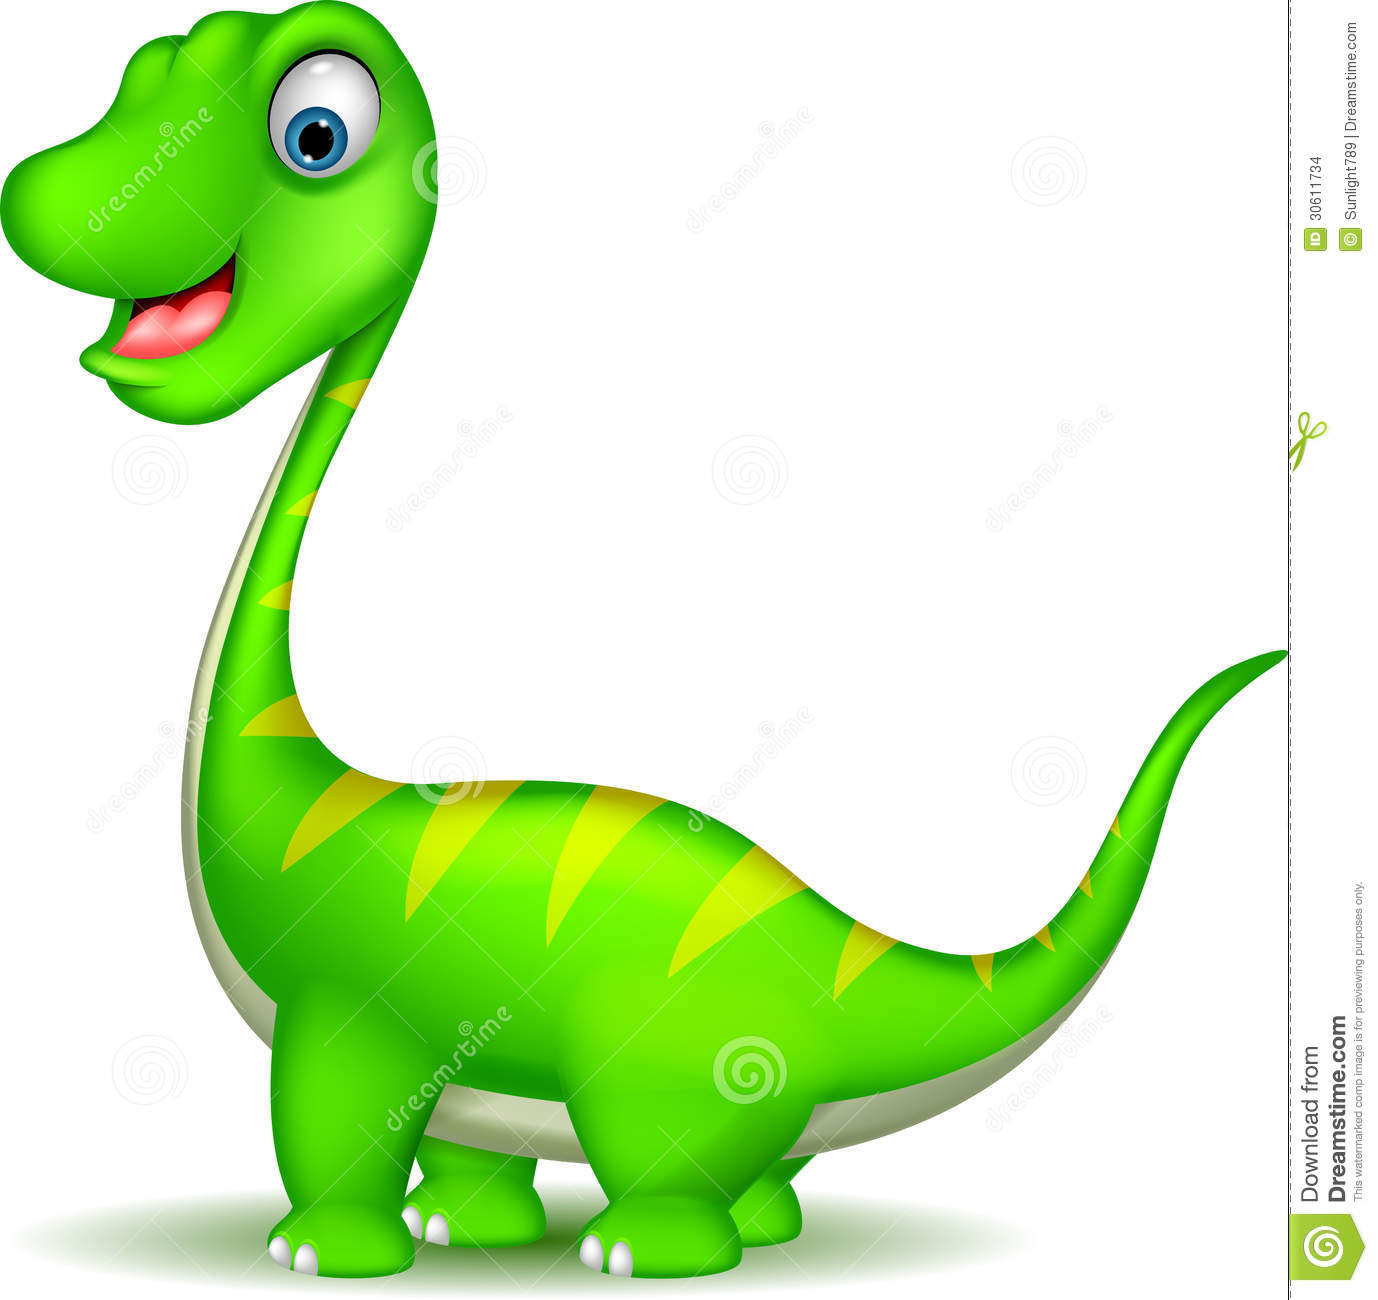 Cute Dinosaur Cartoon Stock Images - Image: 30611734